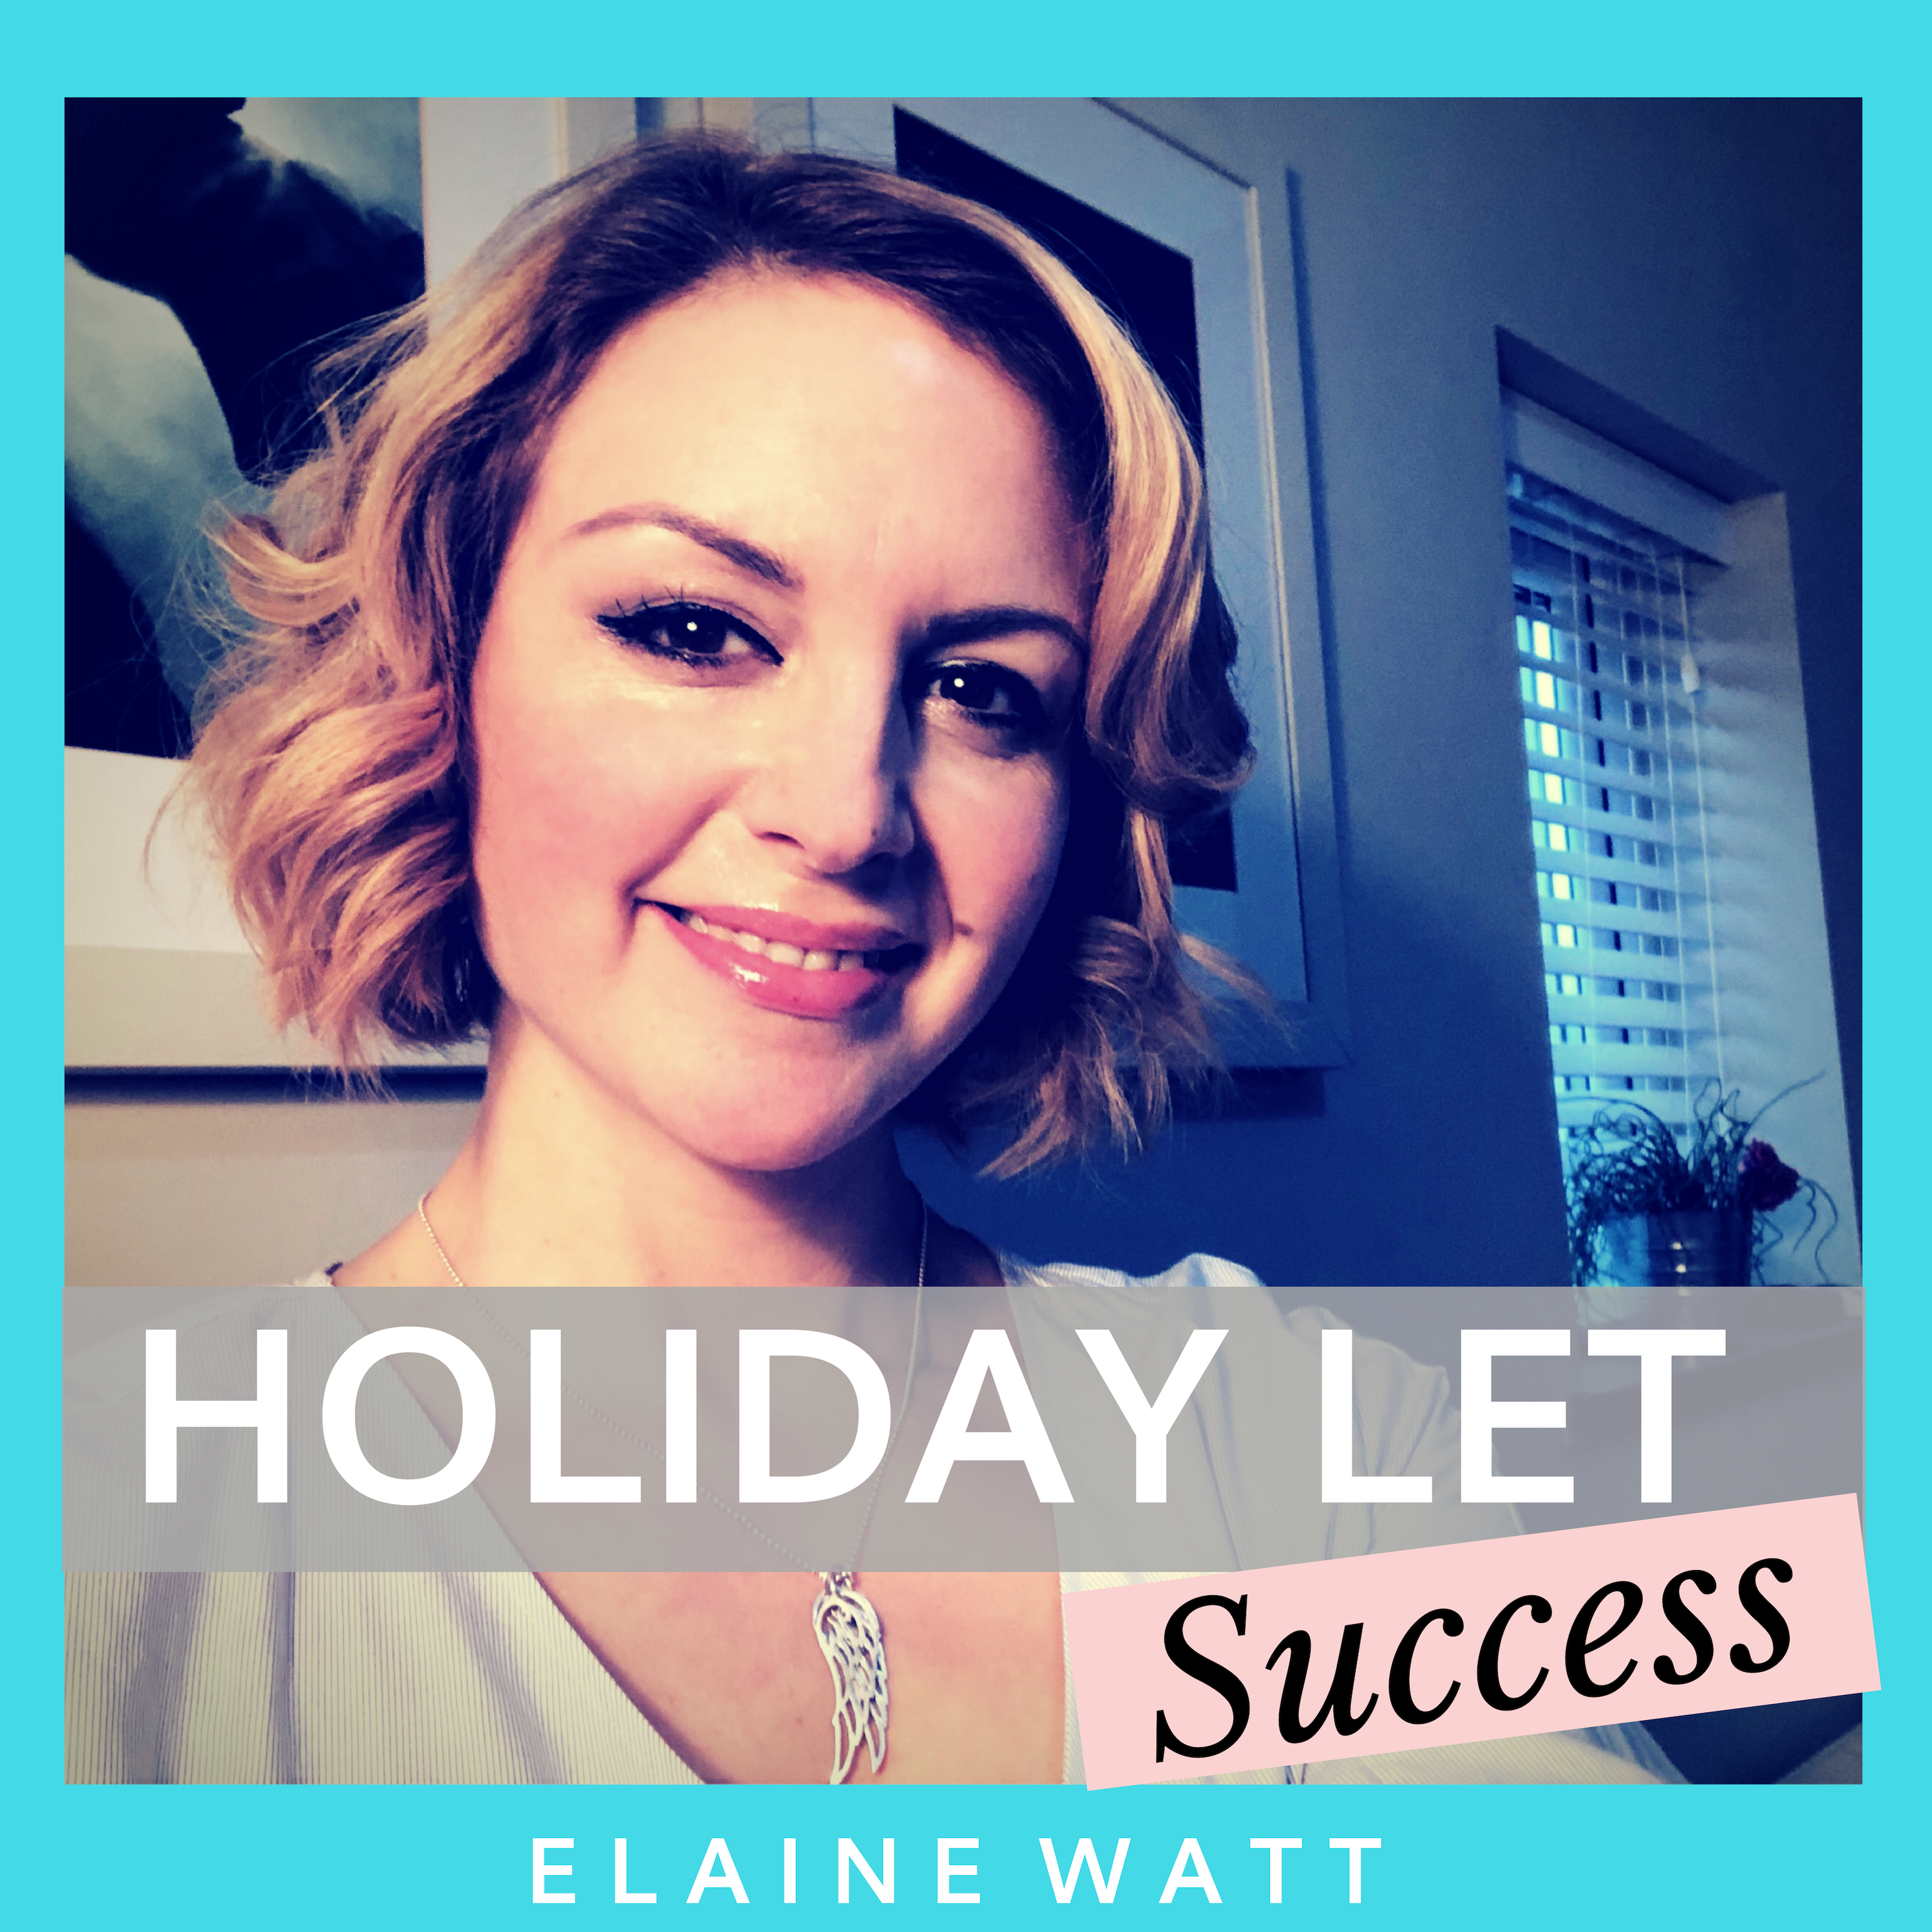 Holiday Let Success   Vacation Rental   Marketing   Elaine Watt   Property Investing   Serviced Accommodation   Holiday Rental   Increase Bookings   Reduce Costs   Save Time   Property Management show art